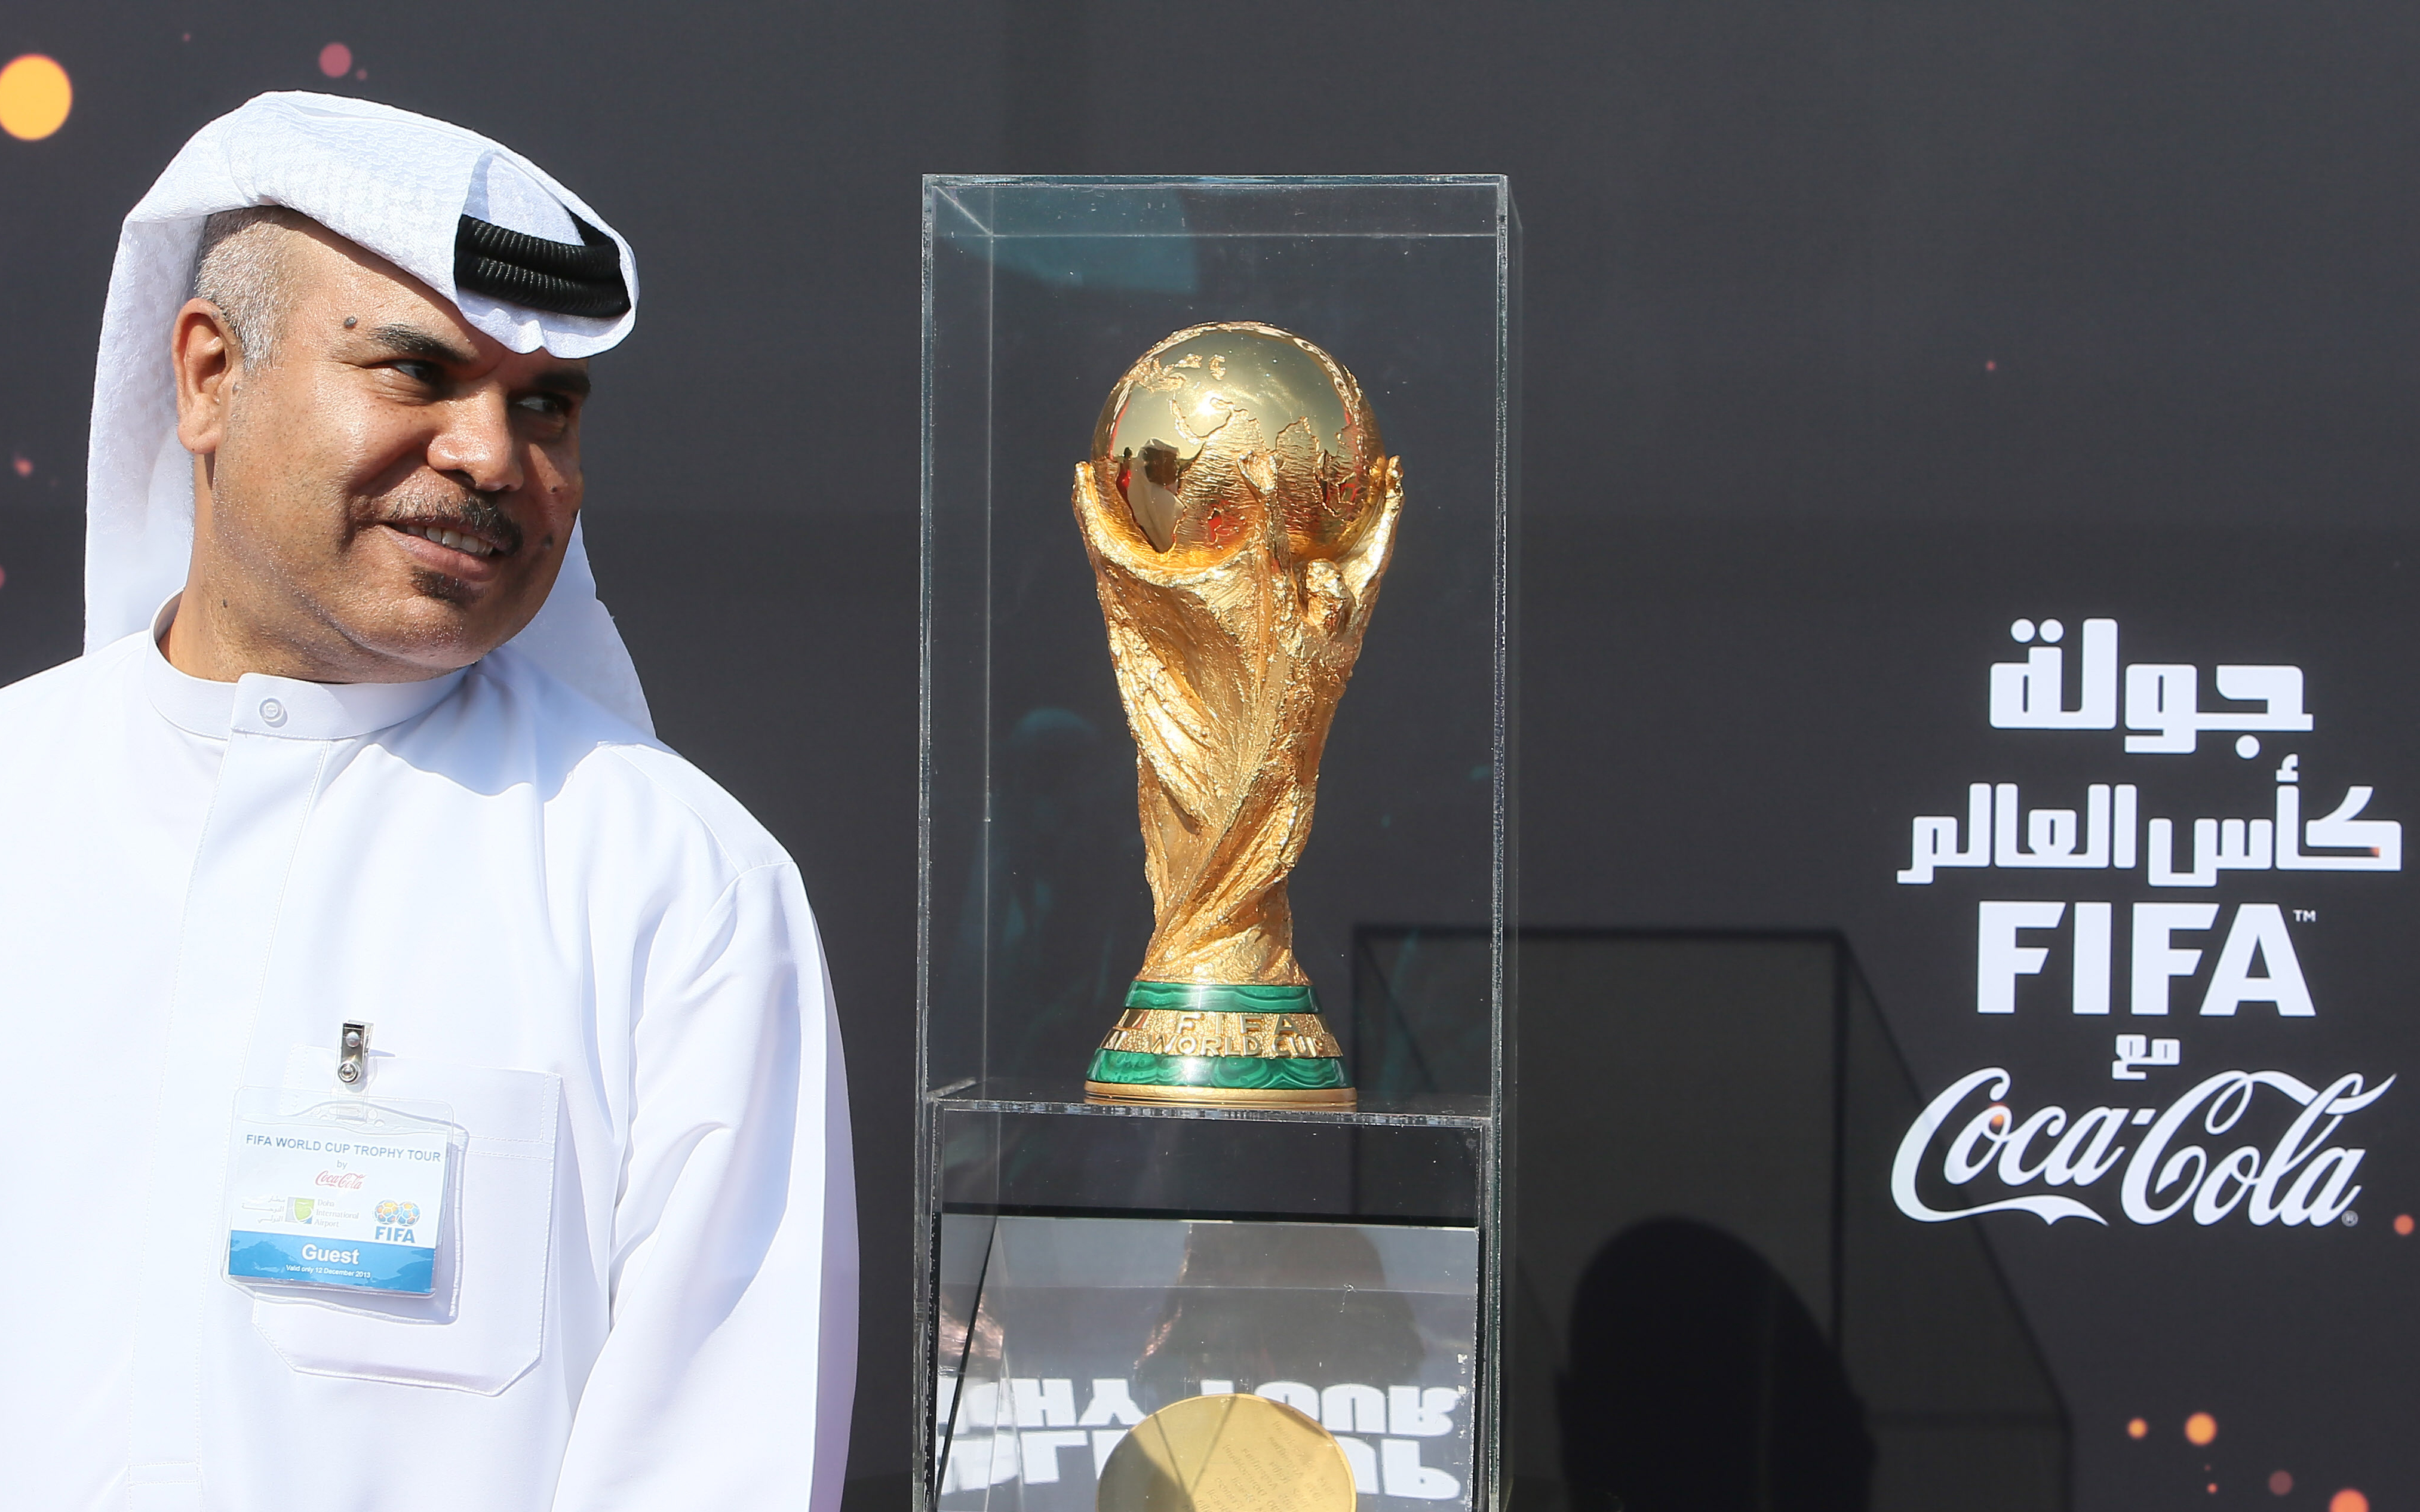 A Qatari official stands near the FIFA World Cup trophy following its arrival in Doha, on Dec. 12, 2013.